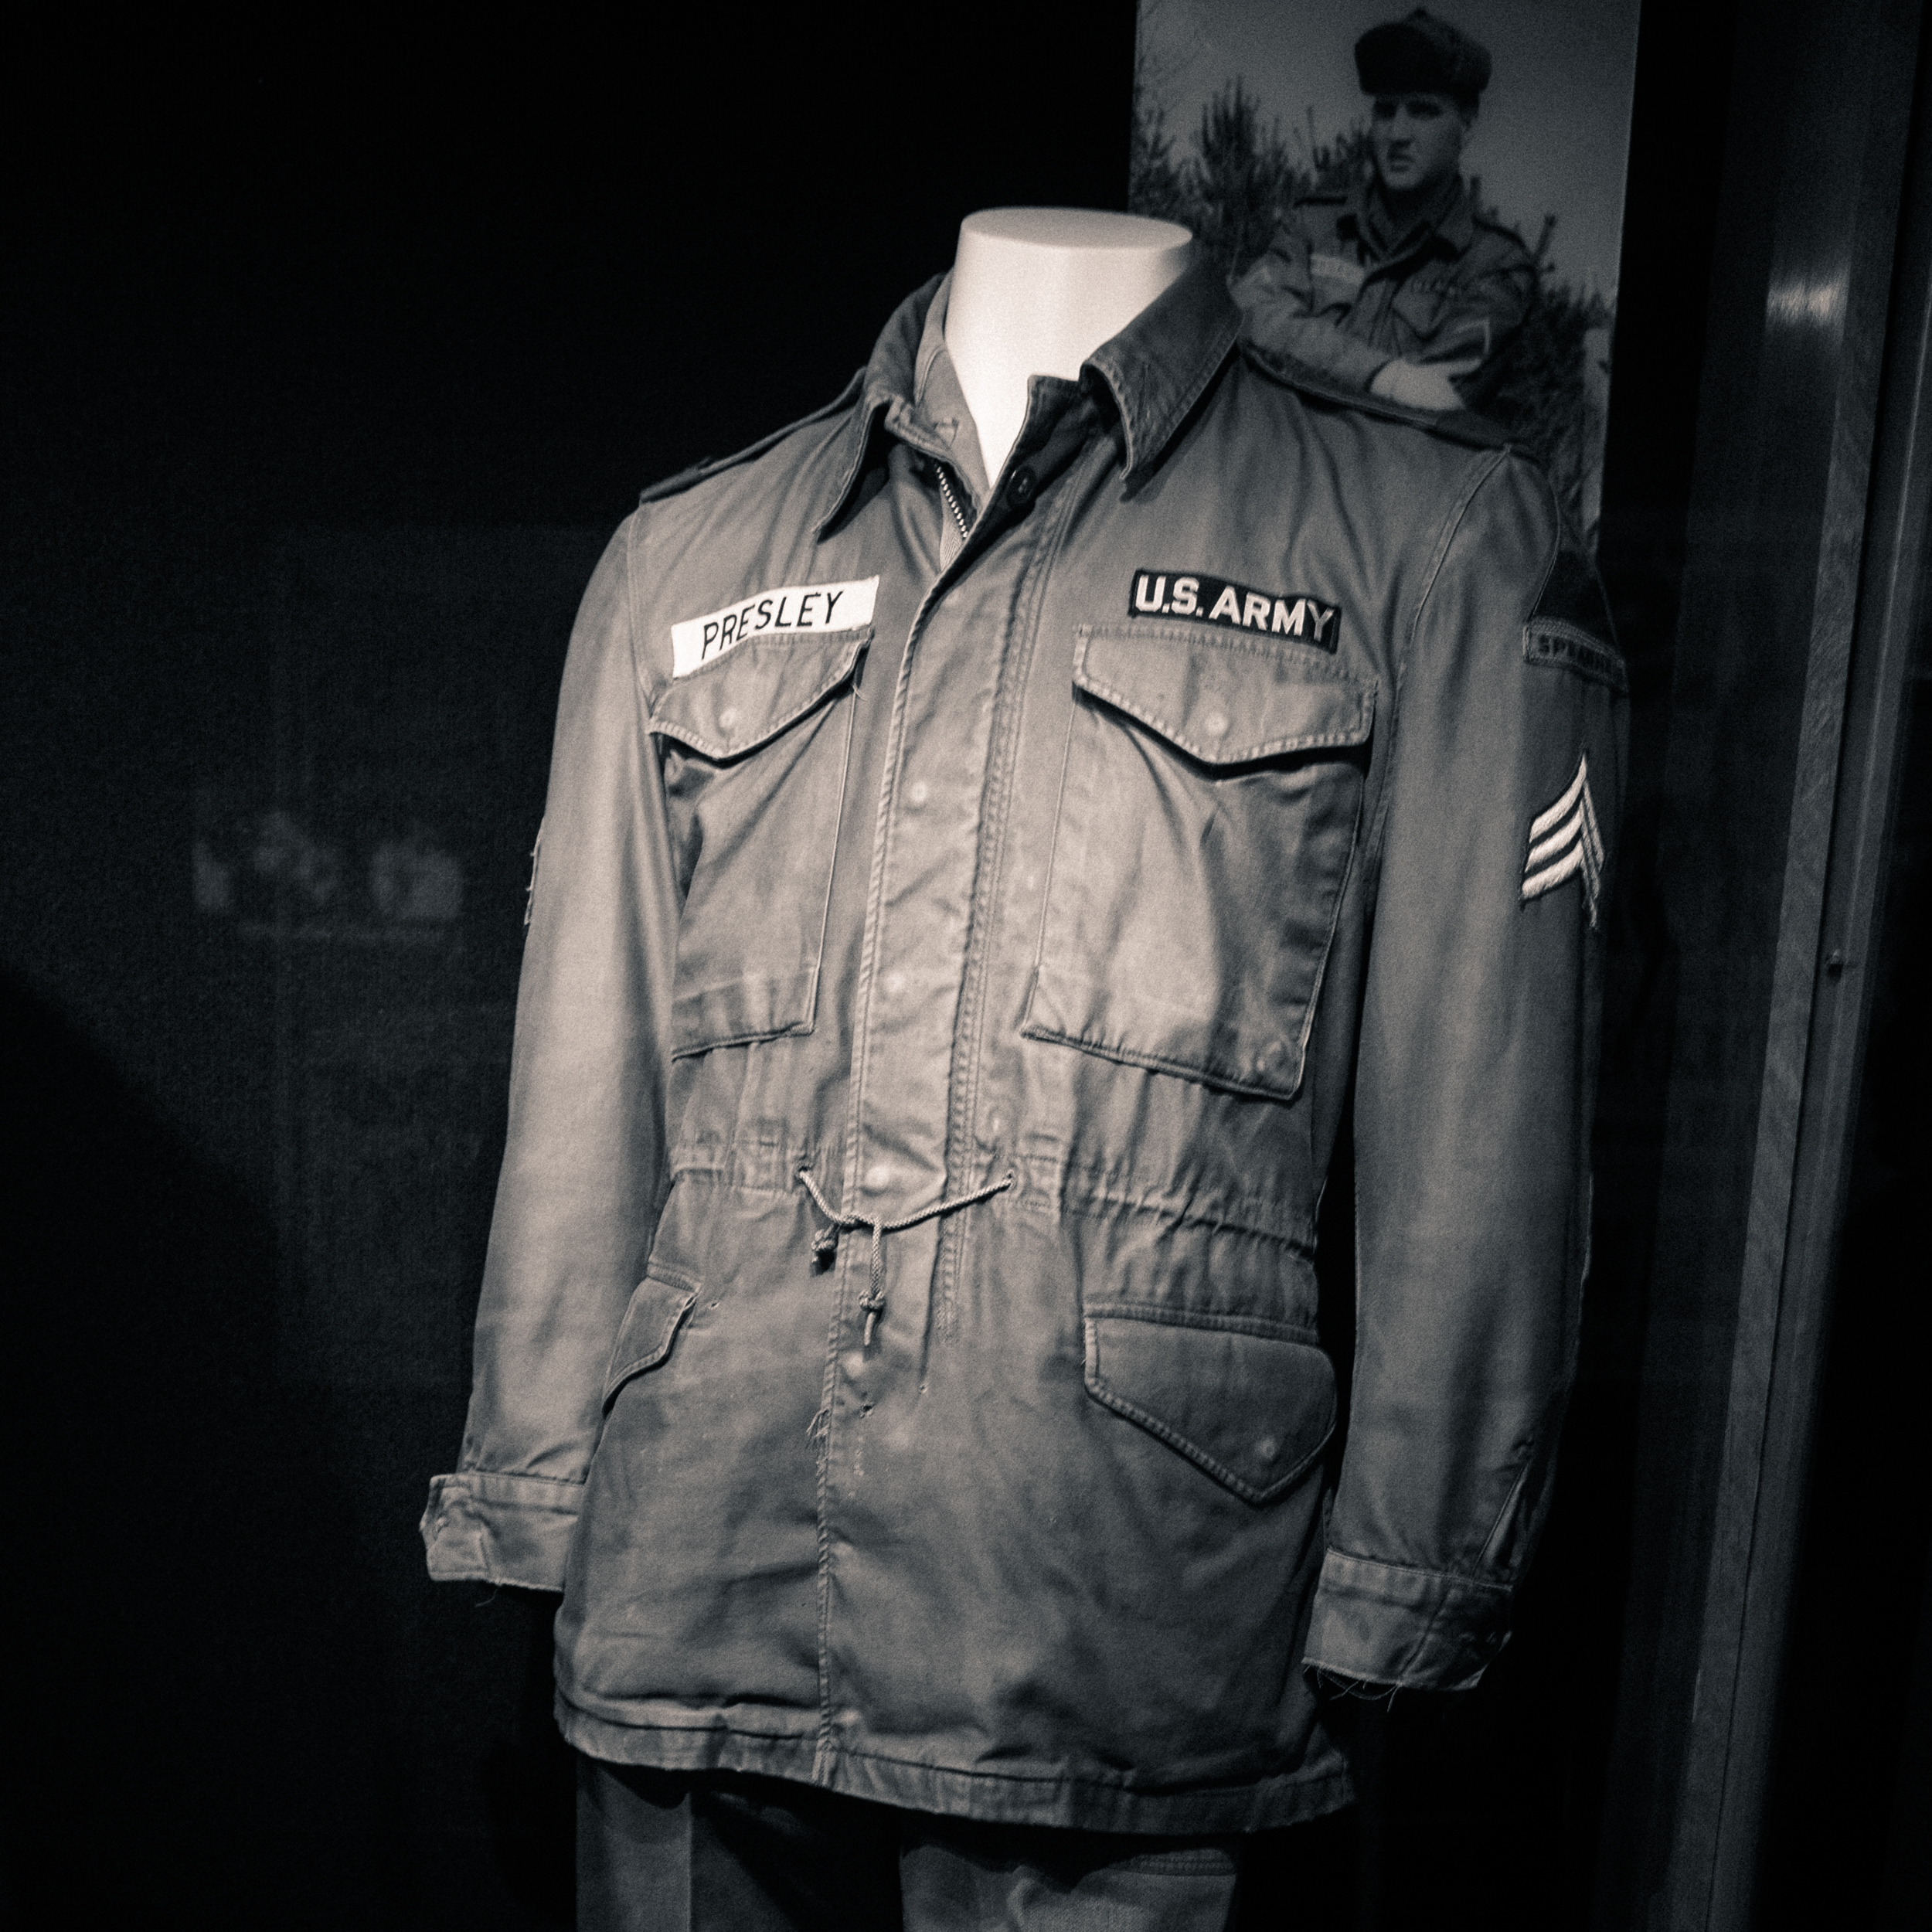 Elvis's Army Jacket